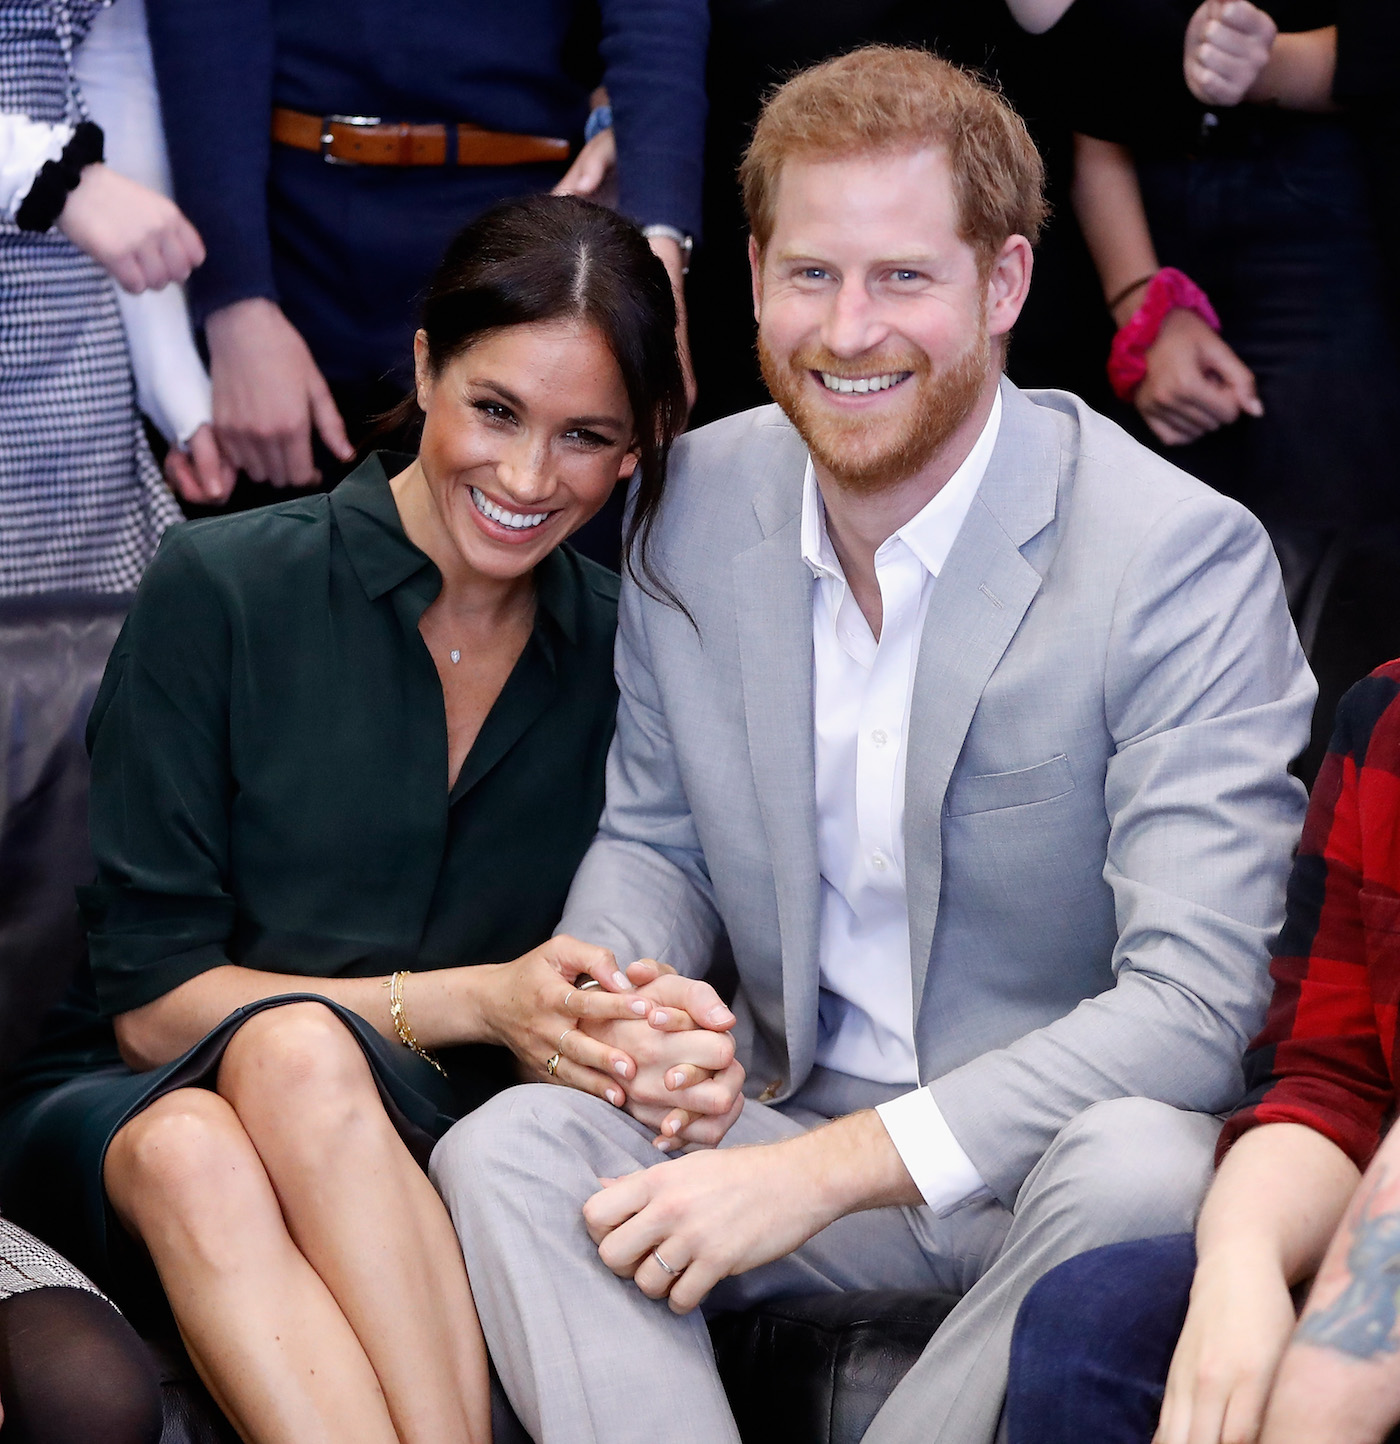 The Sentimental Gift Meghan Markle Plans On Giving Her